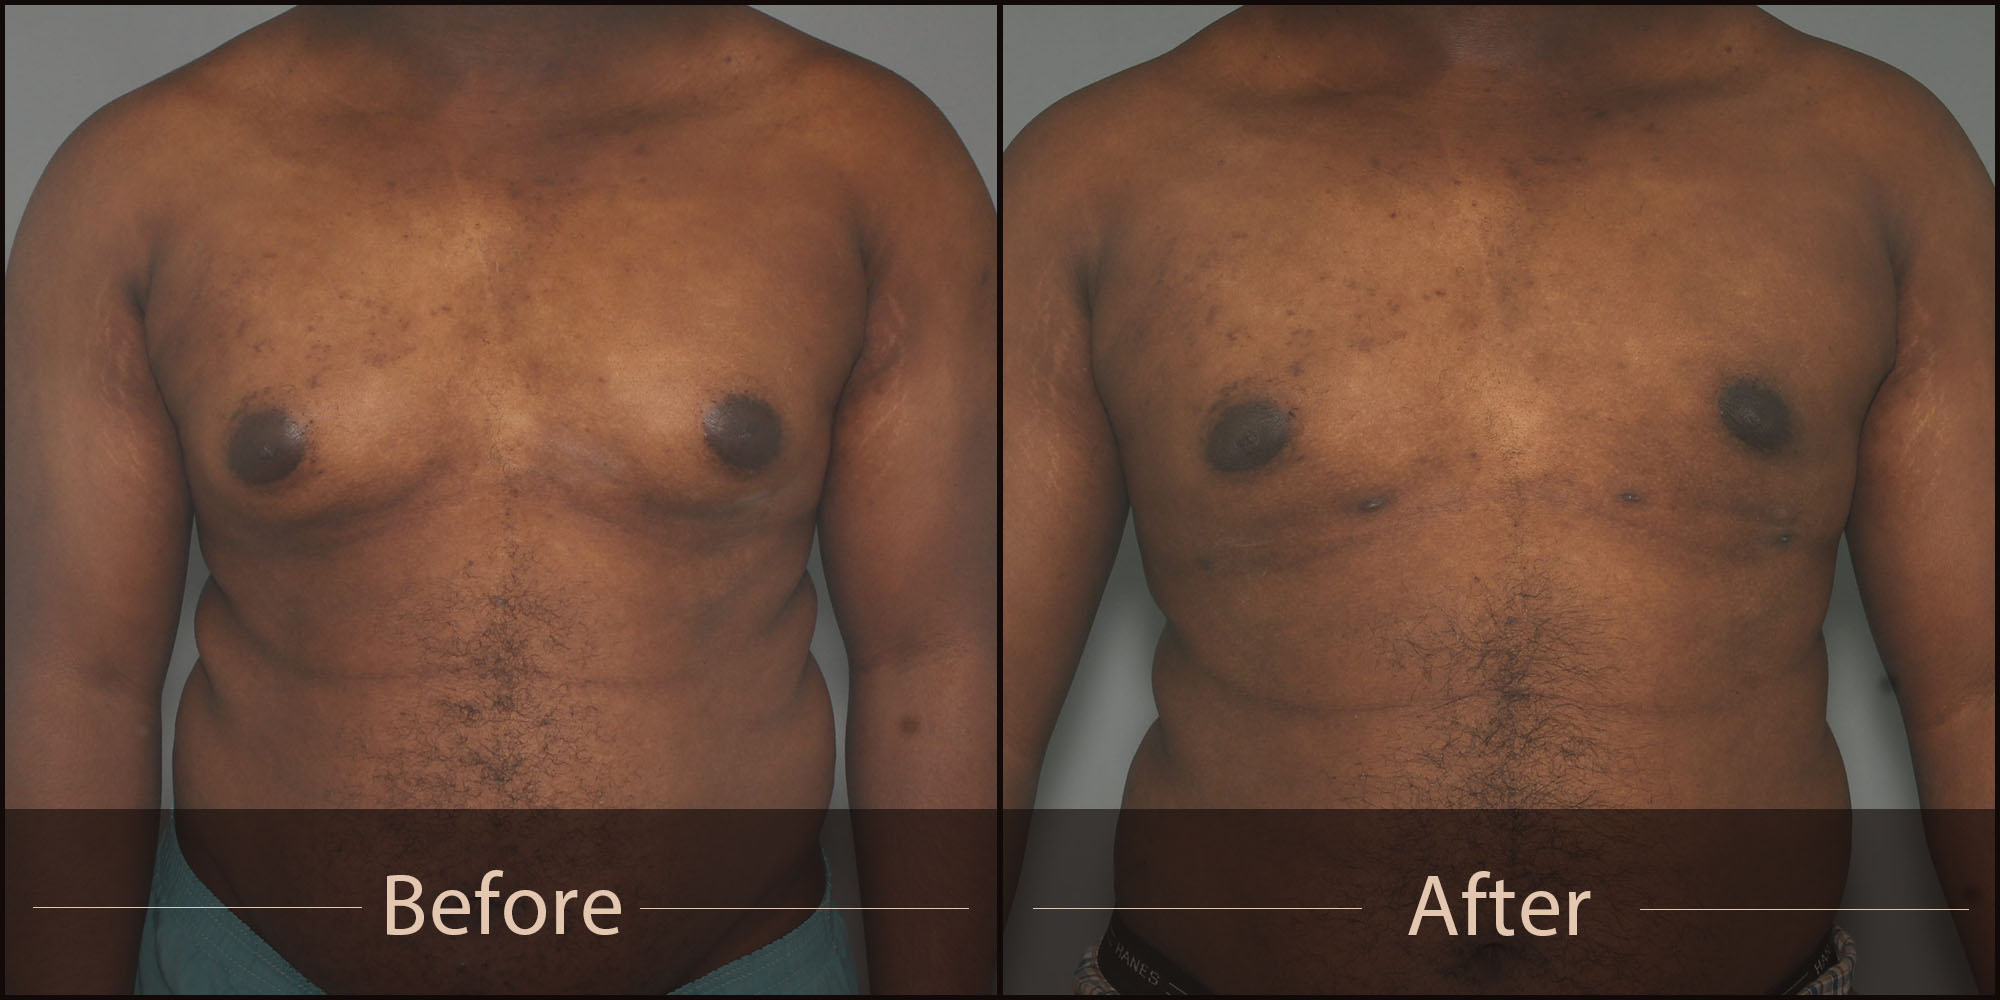 VINCENT N. ZUBOWICZ MD VNZ Plastic Surgery Emory University Hospital & Health Clinic 5 Star Rated Facelift and Breast Aug Male Makeover Man Boobs